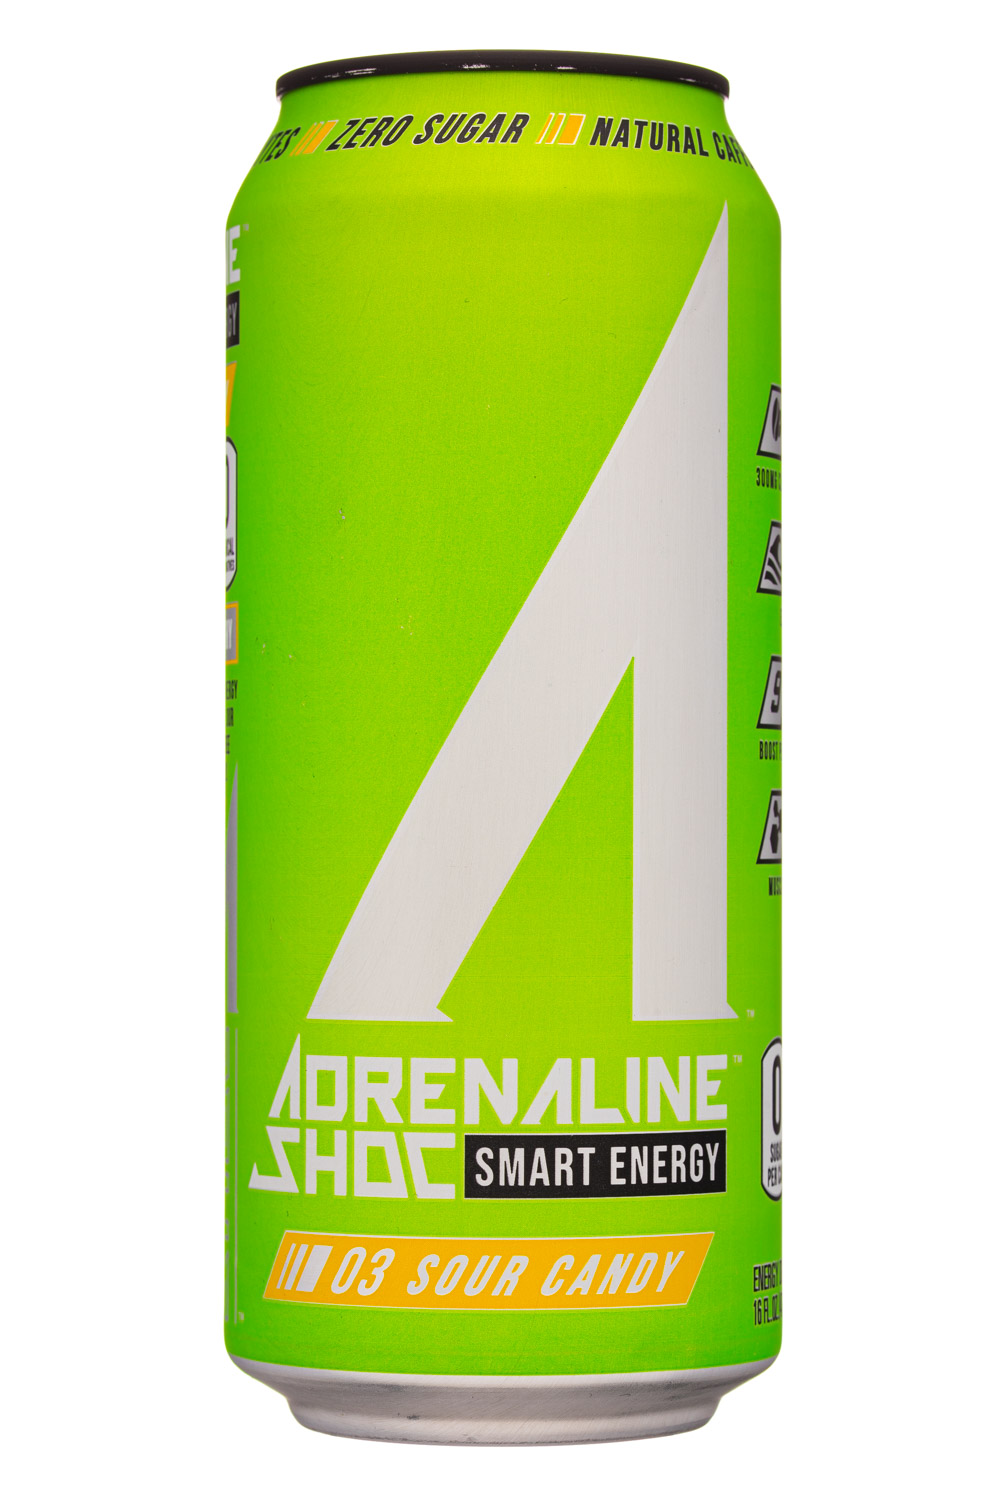 Adrenaline Shoc - 03 Sour Candy